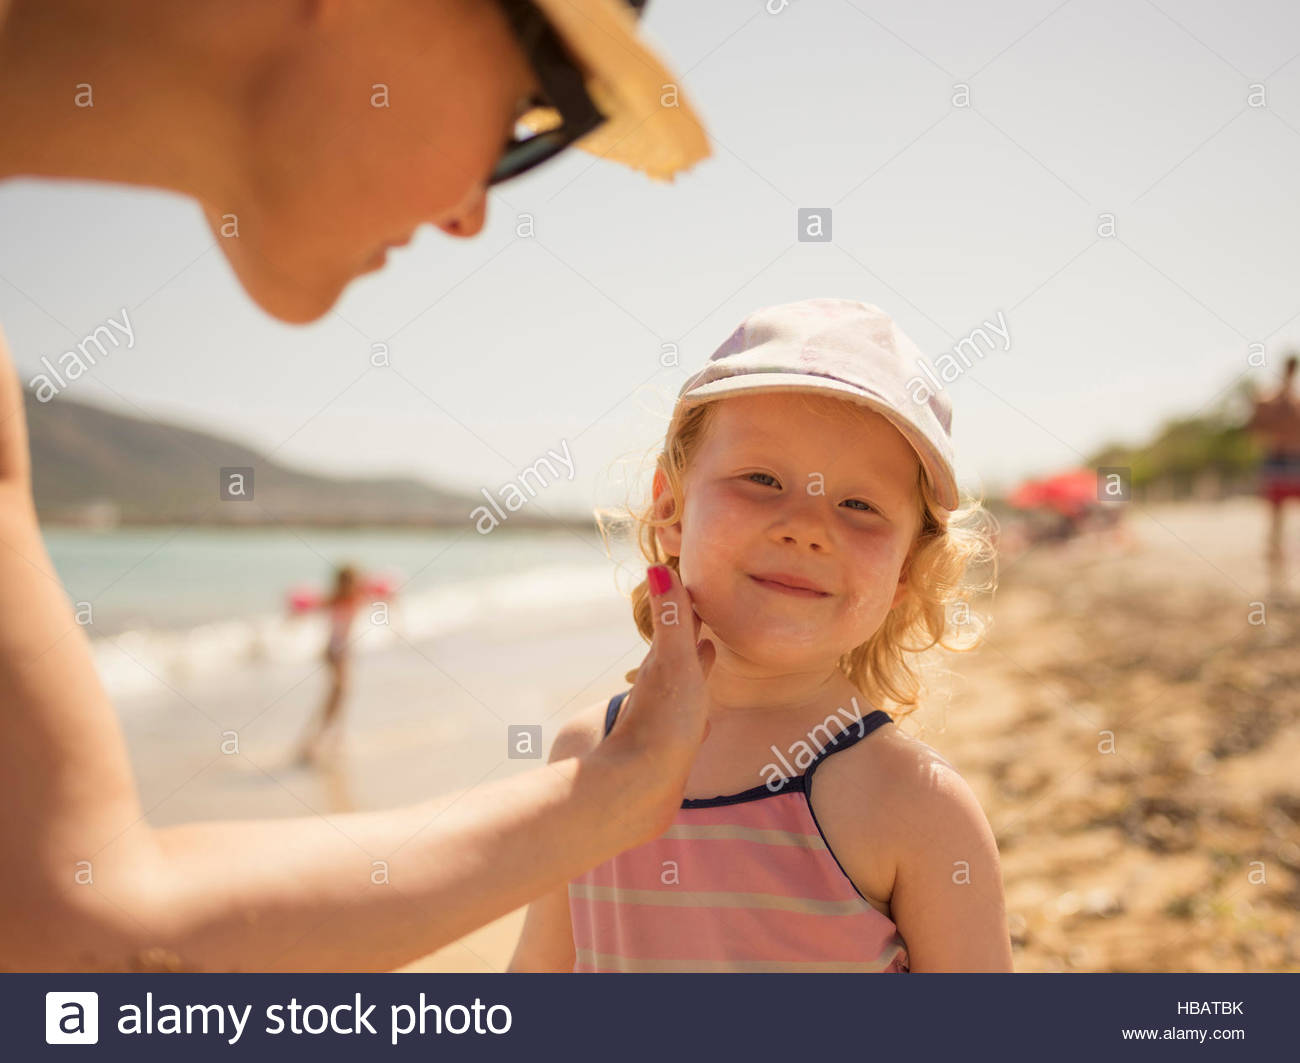 Woman applying suncream to daughter's face on beach, Altea, Alicante Province, Spain - Stock Image